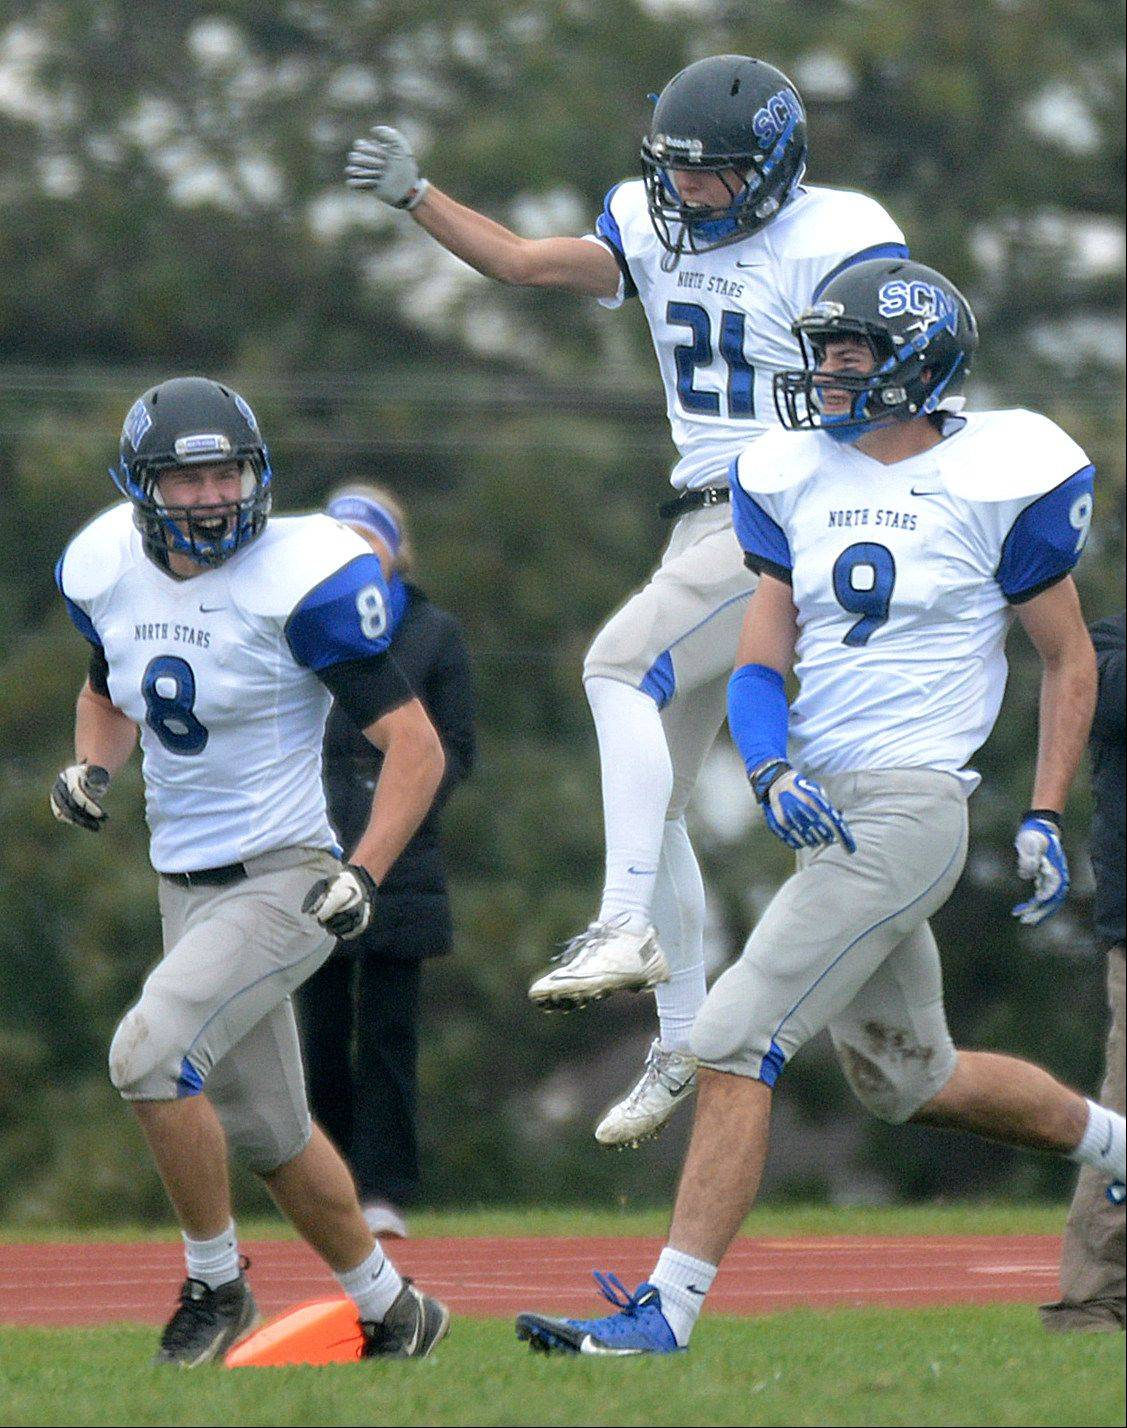 St. Charles North�s, from left, Nick Drawant, Dylan Hunter, and Cameron MacKenzie celebrate a touchdown which was scored on a South Elgin fumble in the end zone at South Elgin on Saturday.